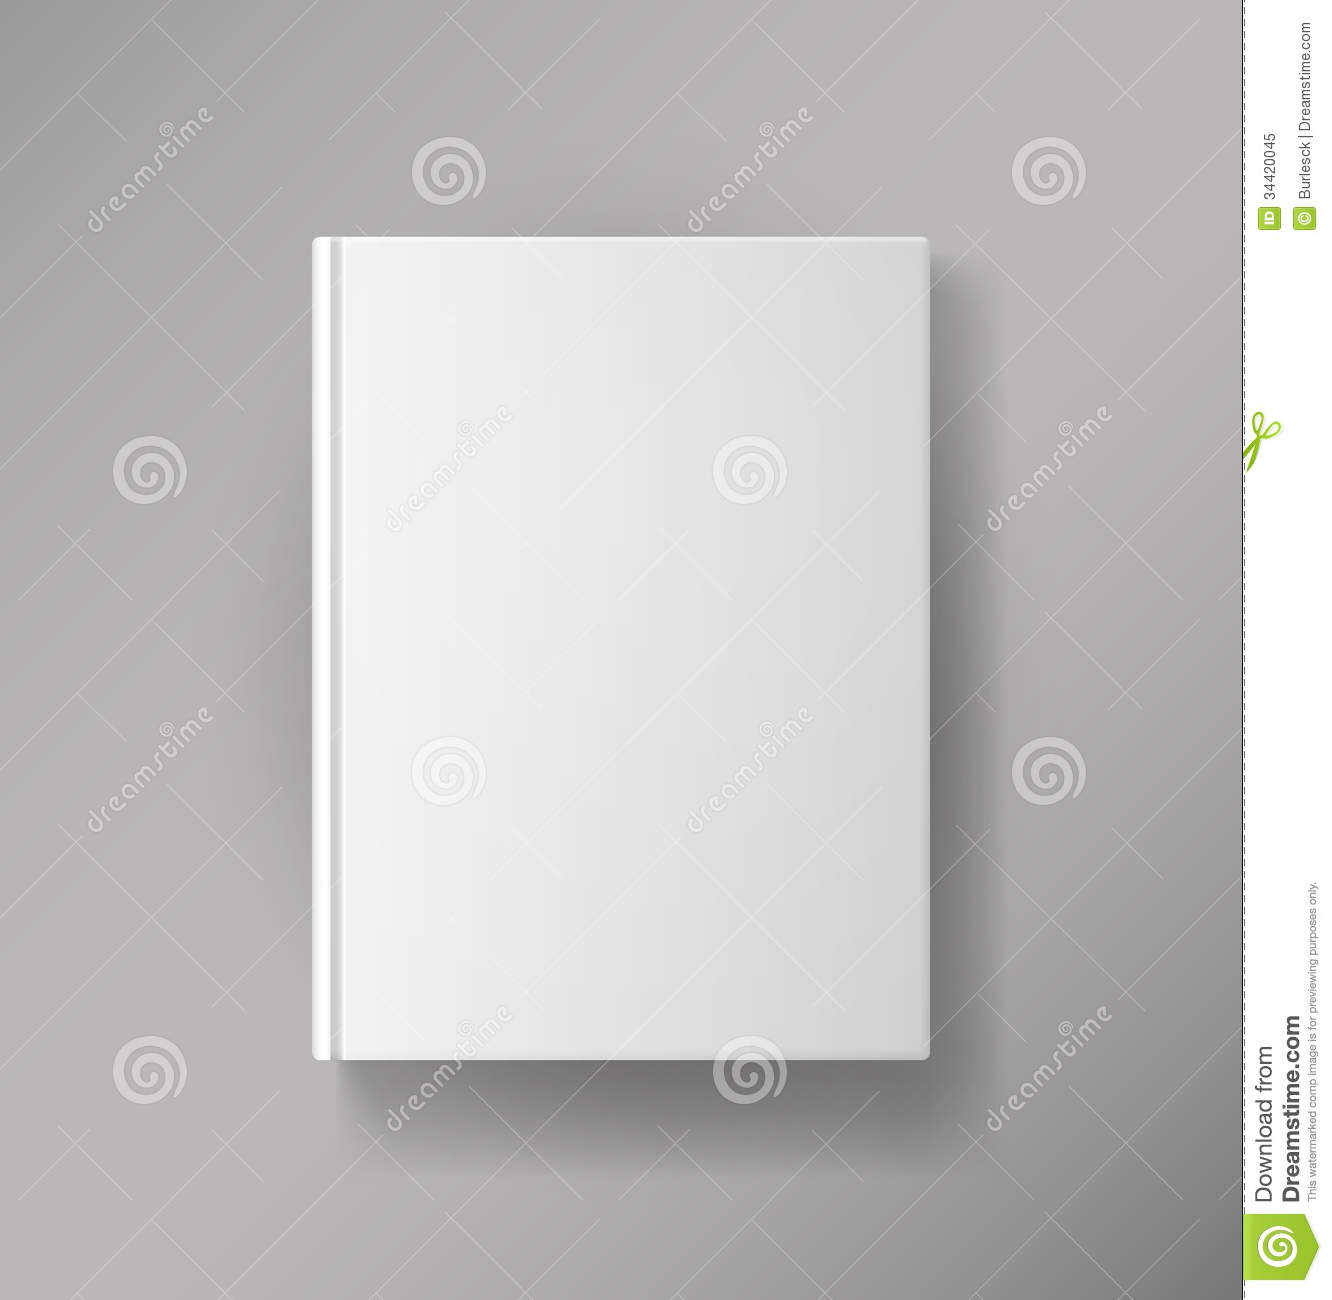 Book Cover White Background : Blank book cover royalty free stock photo image